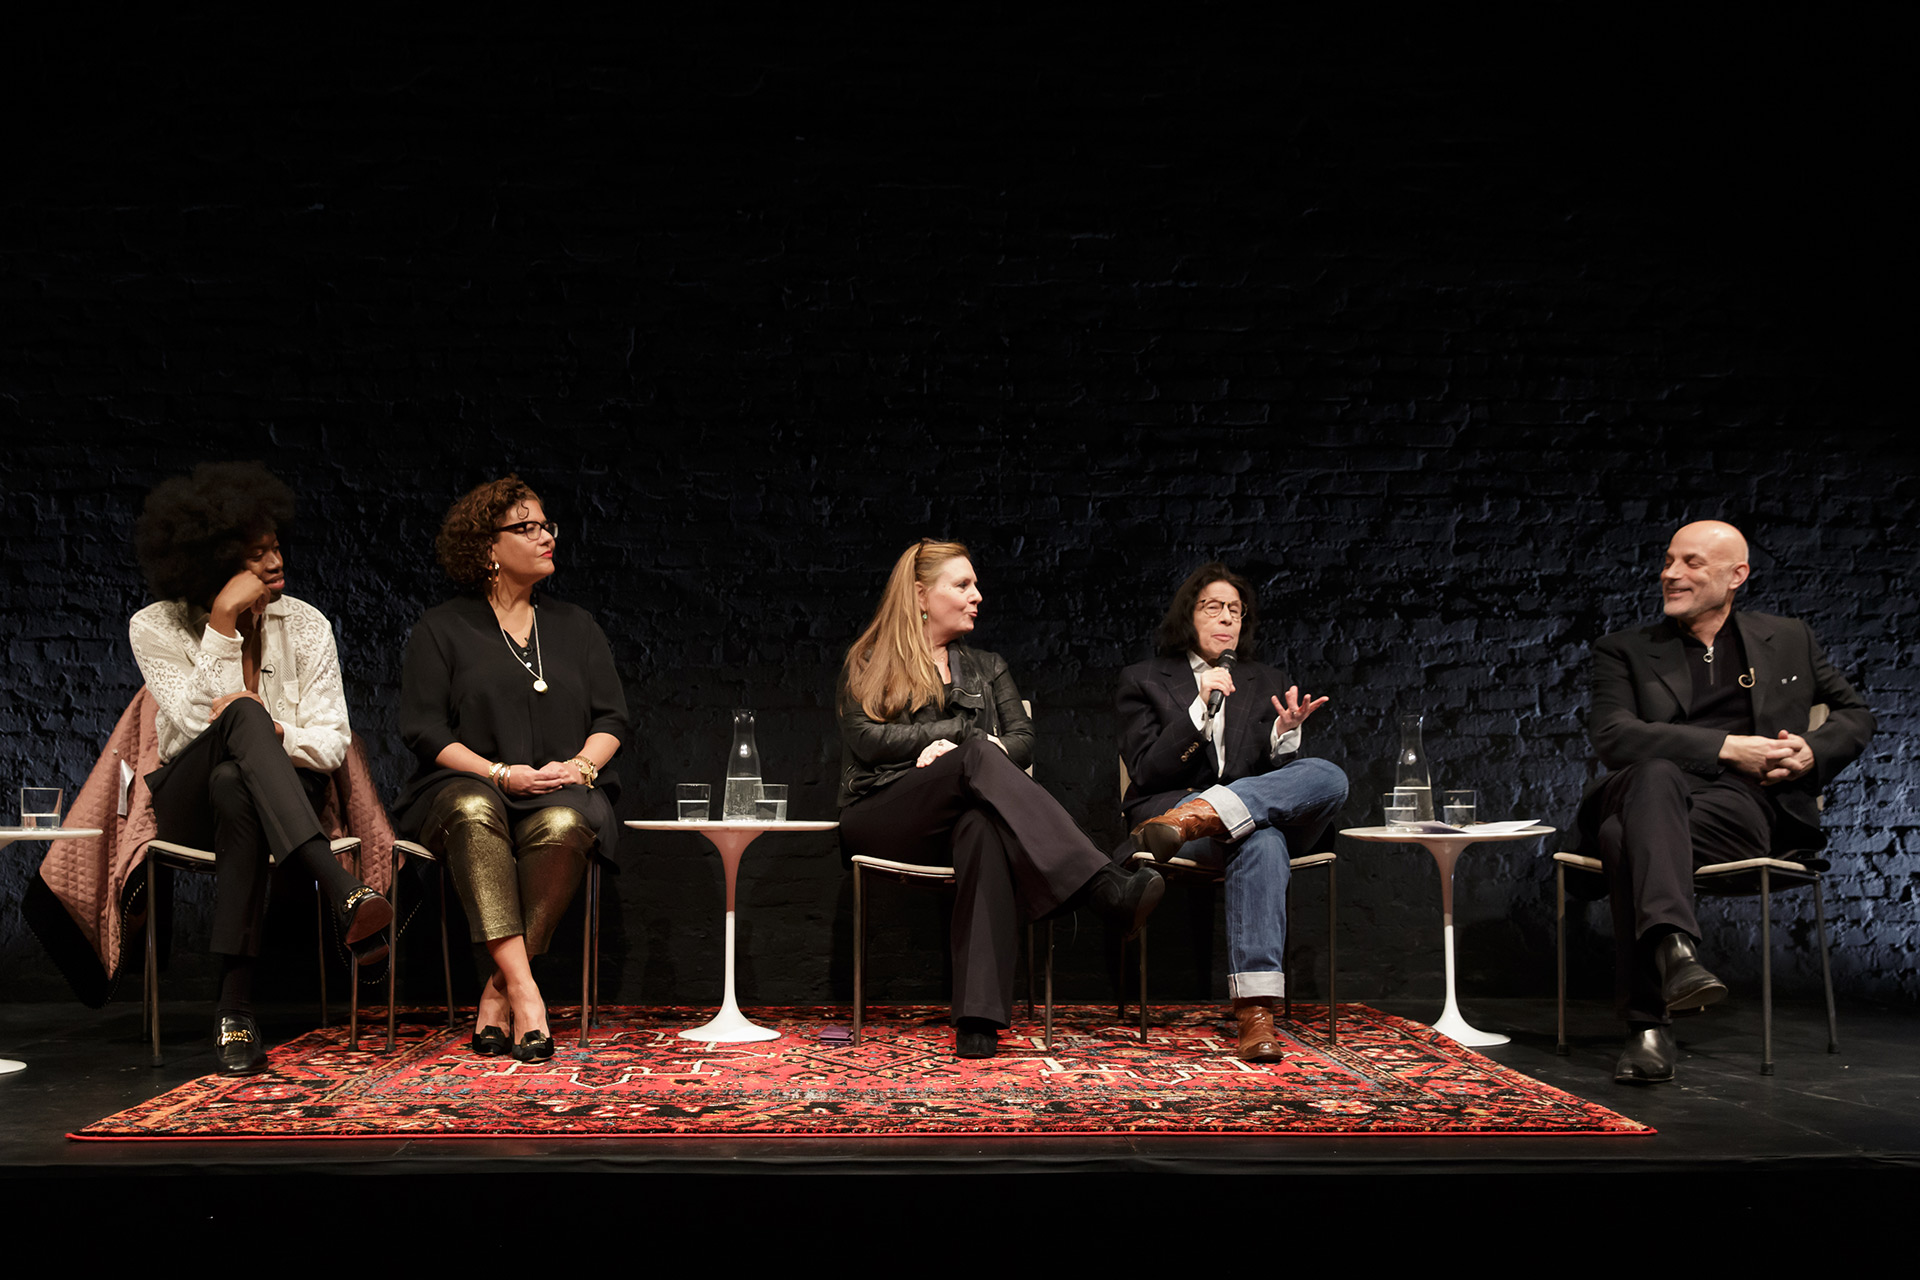 A photo of the panel at the recent Power culture talk titled the power of the artist, which took place at the kitchen in new york in february 2020.